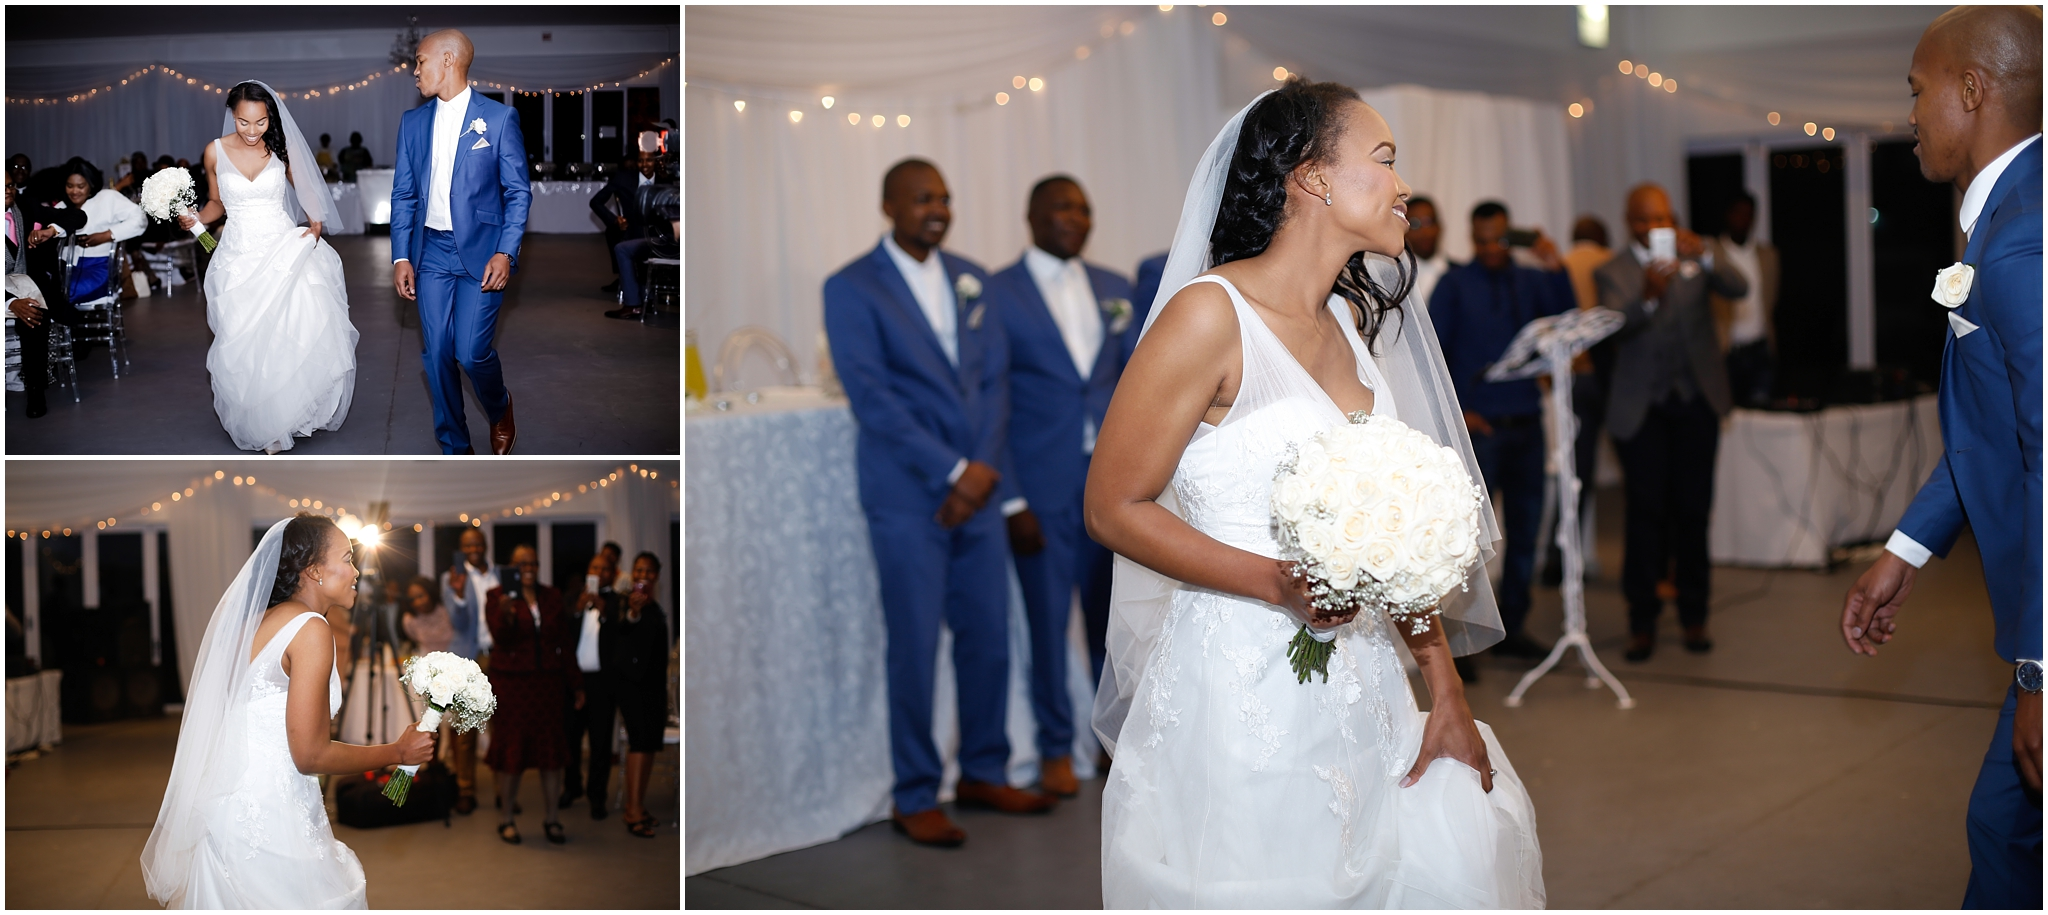 lelethu-kgotsos-wedding-candice-dollery-photography_1726